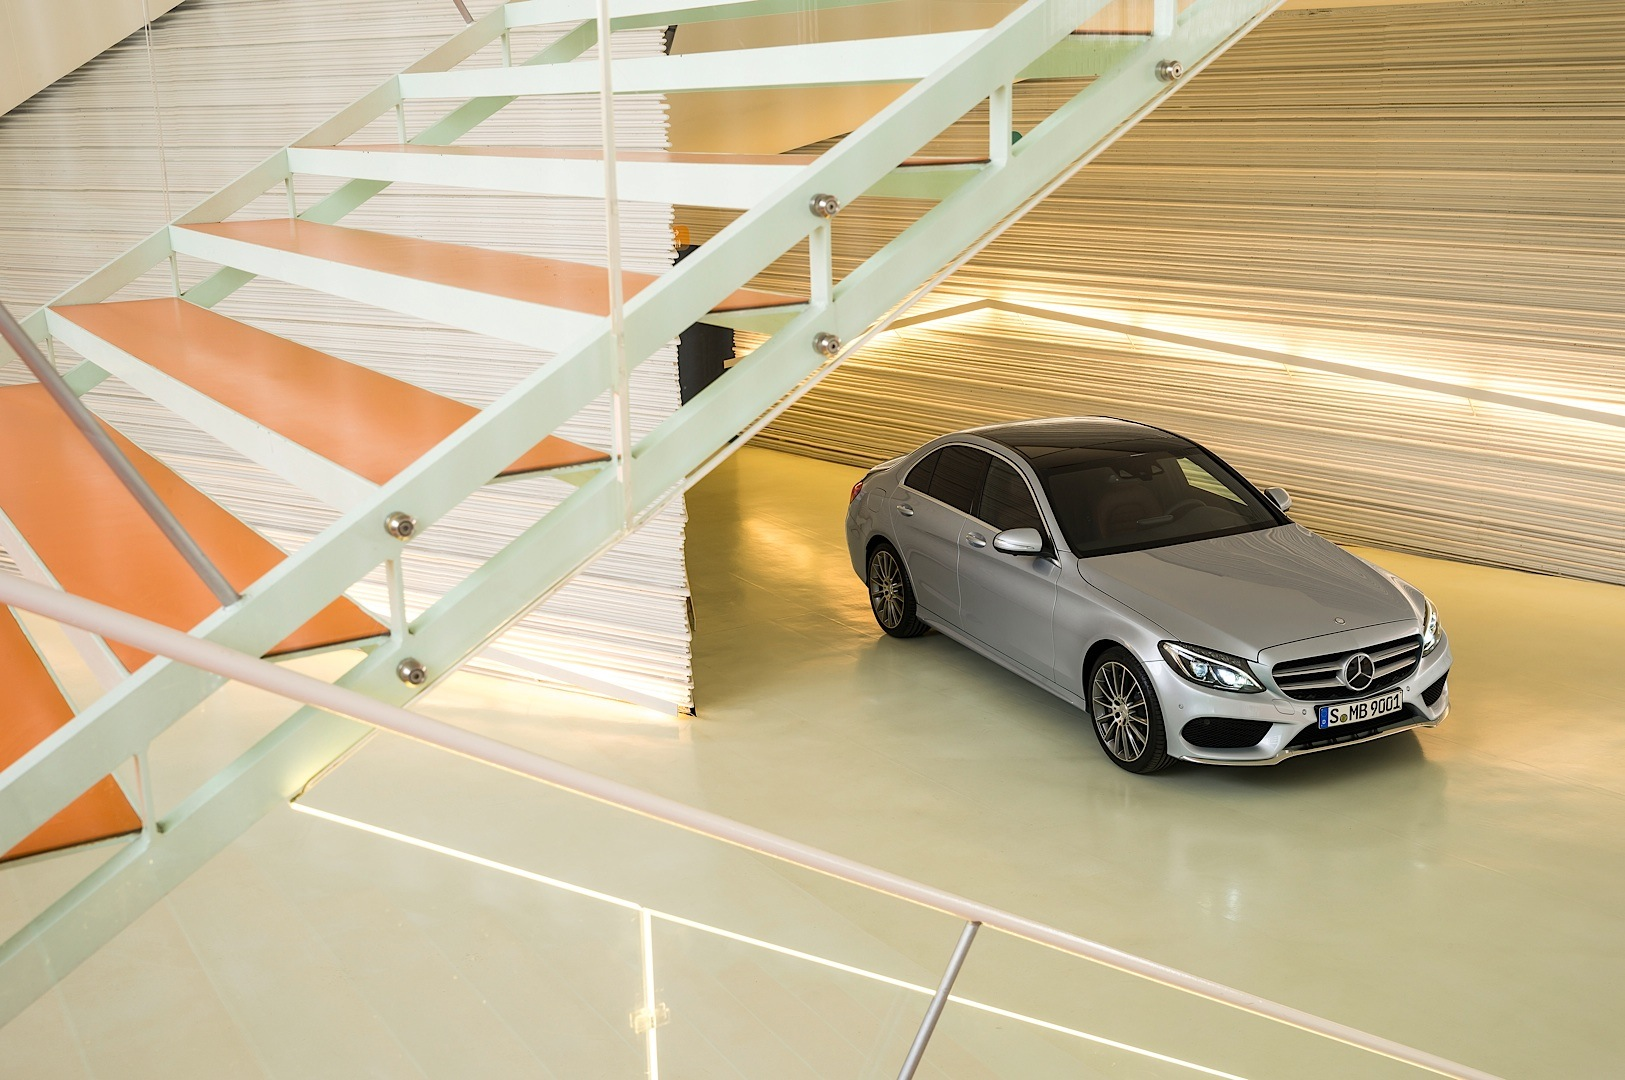 check-out-the-first-official-footage-with-the-new-c-class-w205-video-1080p-51